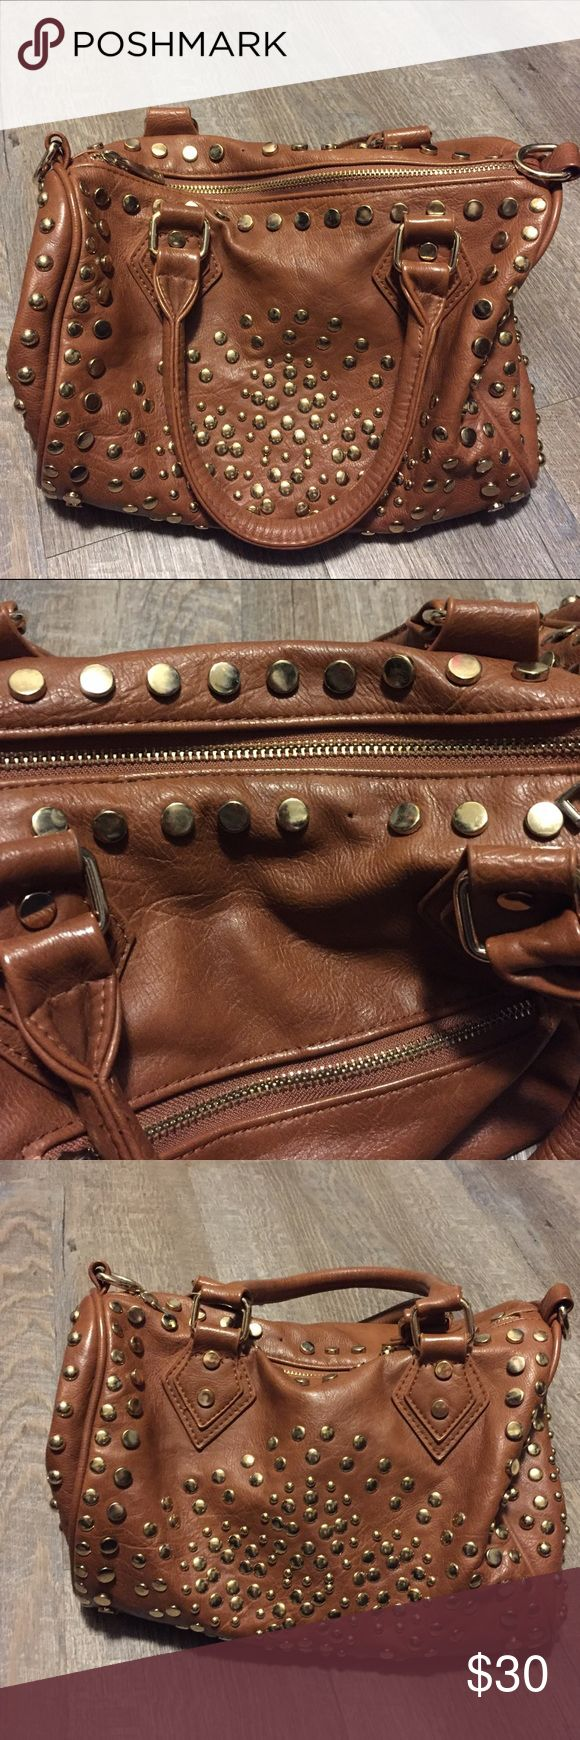 Medium sized brown studded handbag Medium sized brown studded handbag. Studs are gold, super cute bag. Has cross body strap and is included. There is one stud missing from the top and is shown in picture 2. Pre loved in great condition! No trades, please make offers through offer button. MMS Bags Shoulder Bags